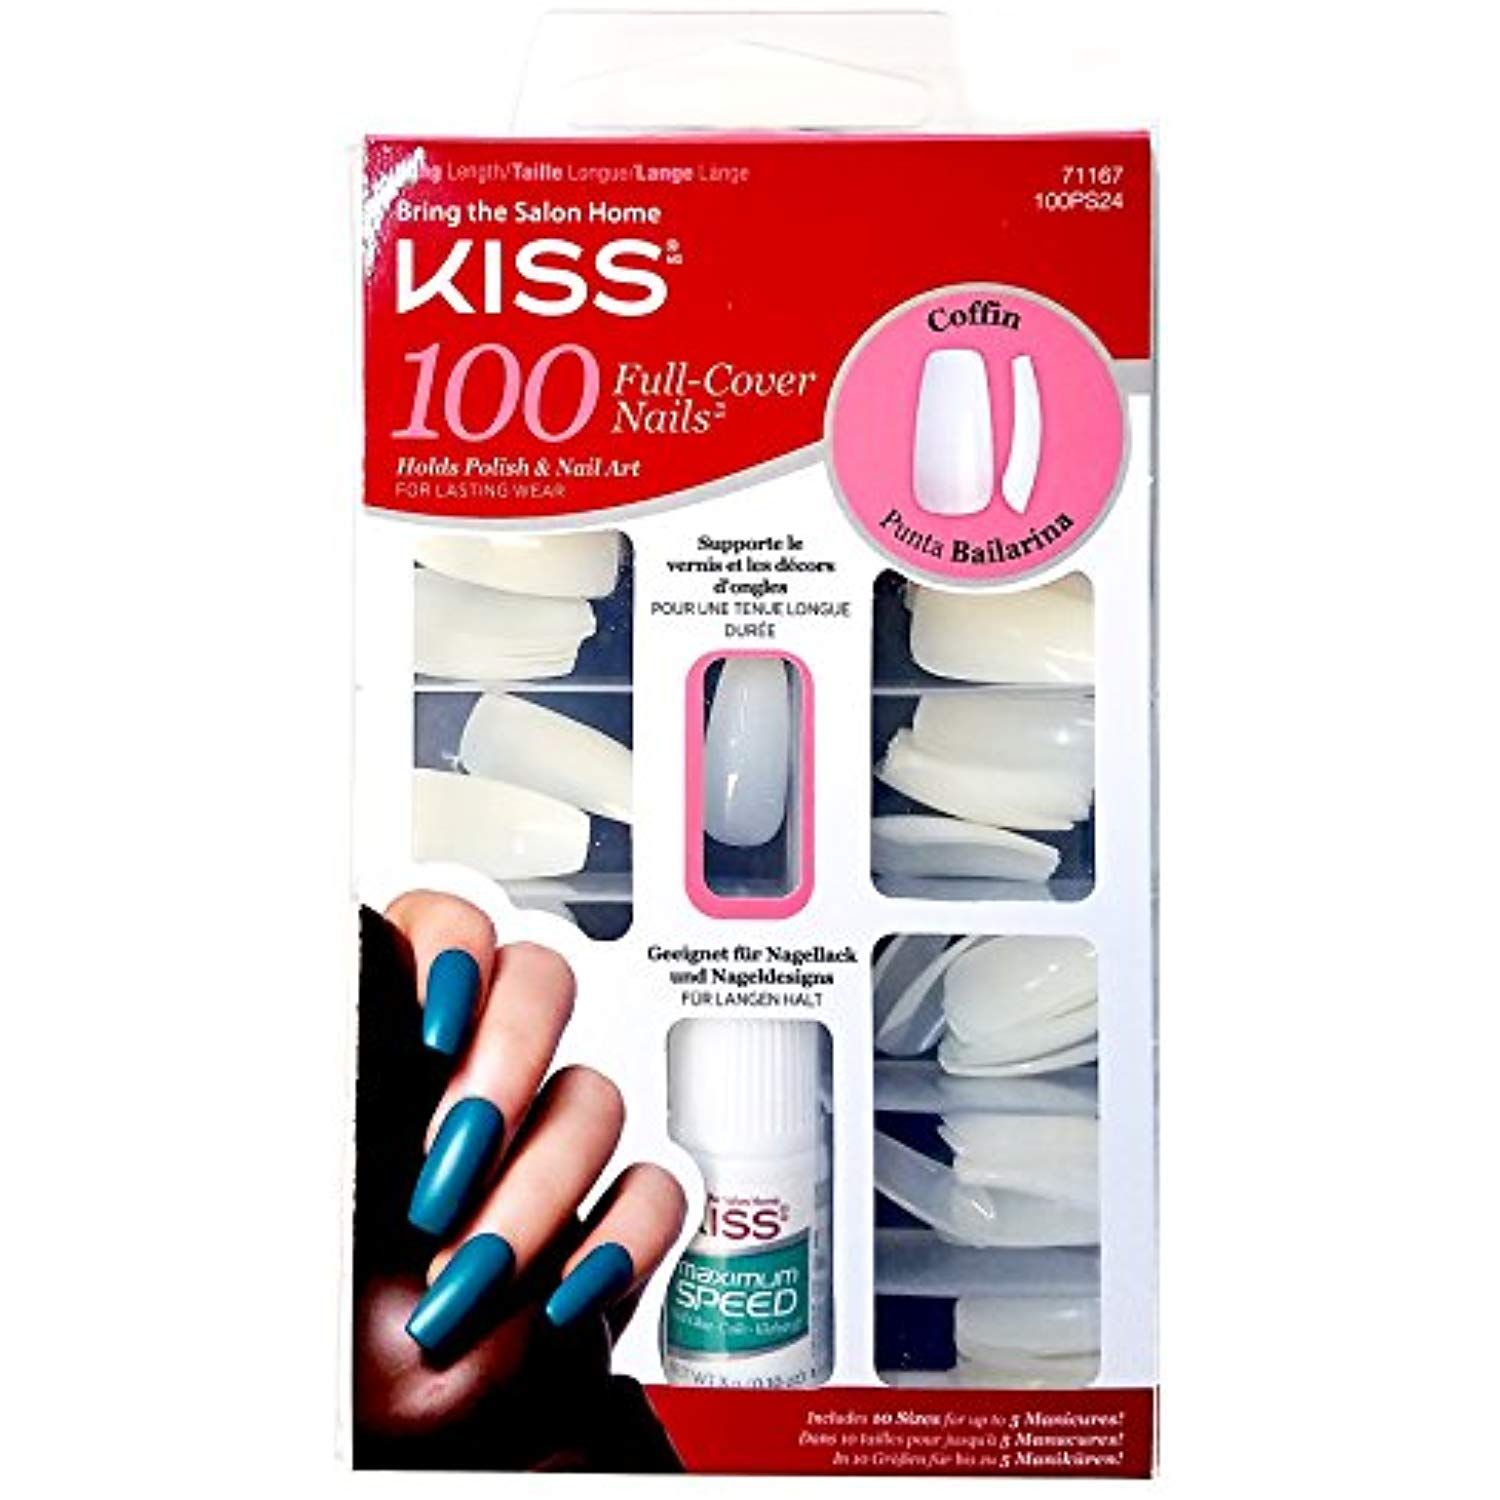 Kiss Ballerina Coffin 100 Tips 71167 100ps24 Long Length Nails 3 Pack See This Great Product This Is An Affiliat Glue On Nails Nail Tips Kiss Nails Kit